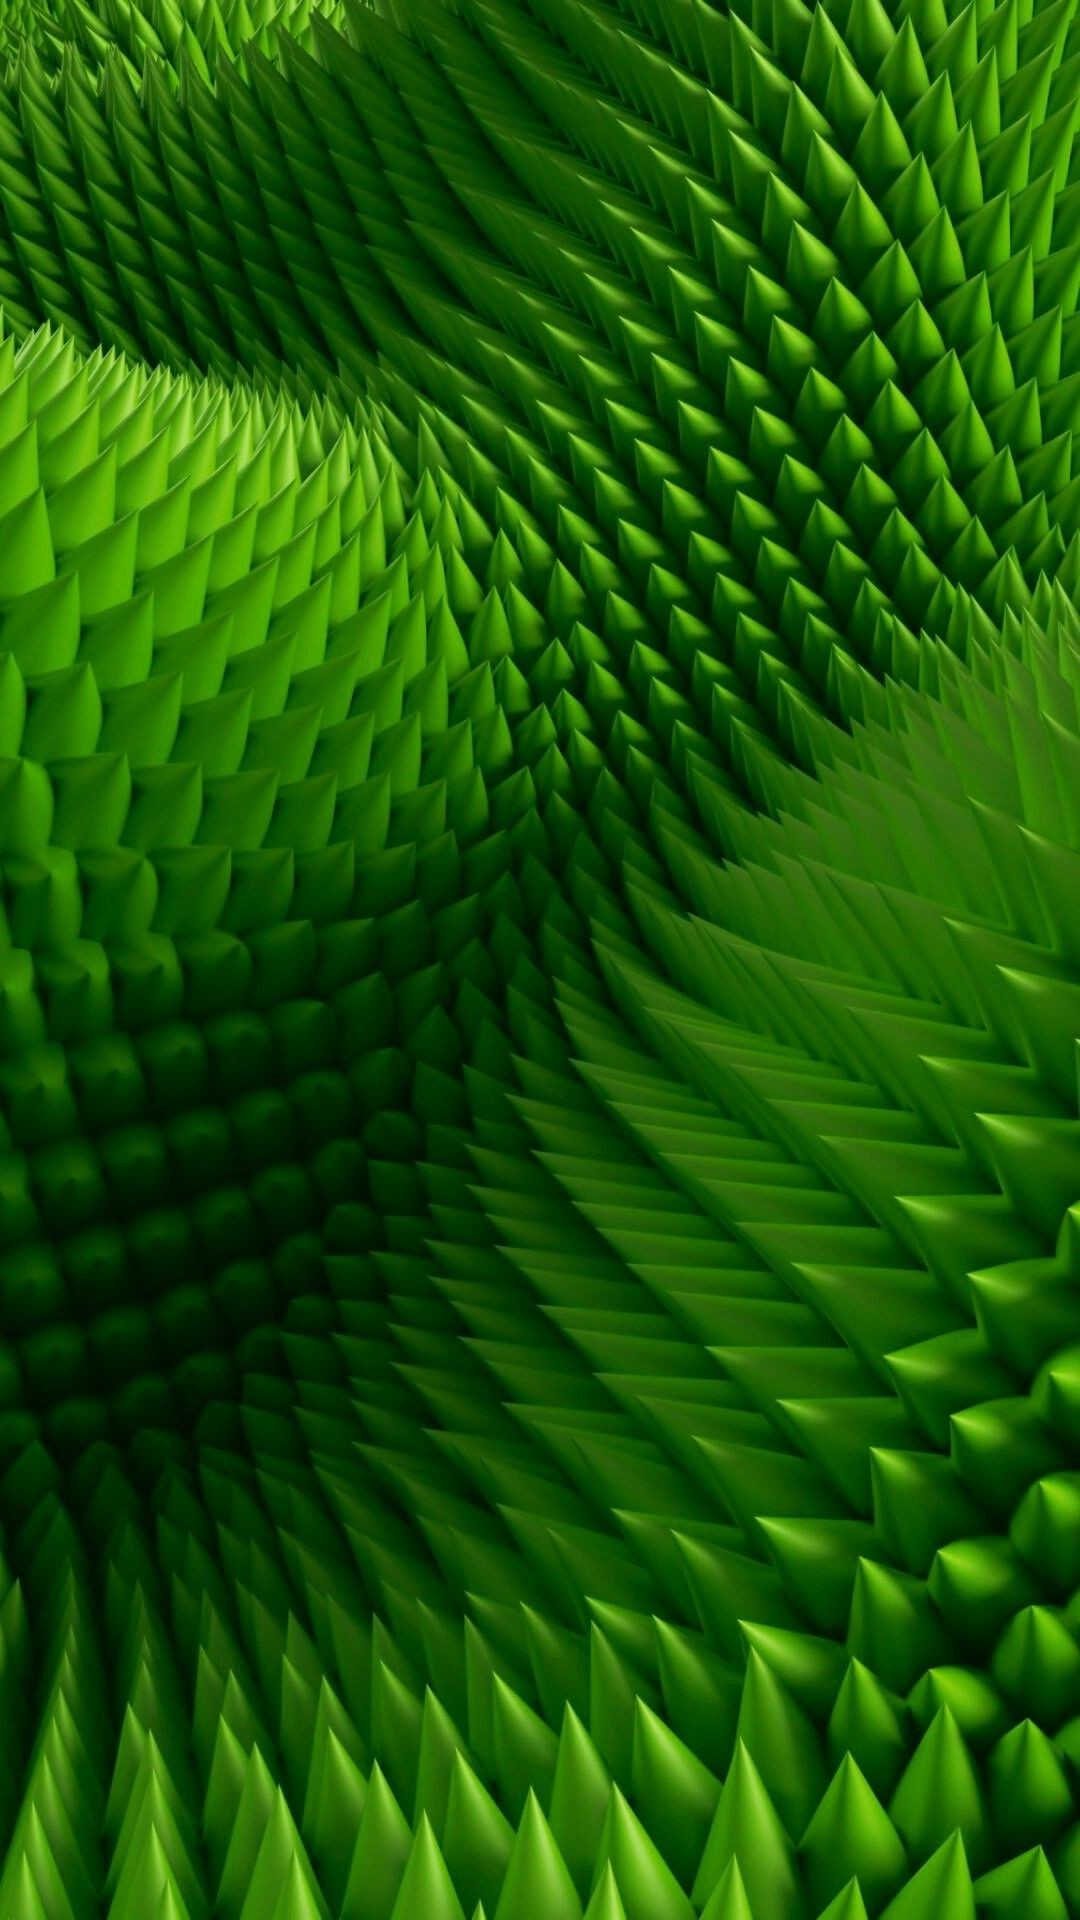 1080x1920 Hintergrund Design, Green Art, Bright Green, Papo, Background Images,  Backgrounds,